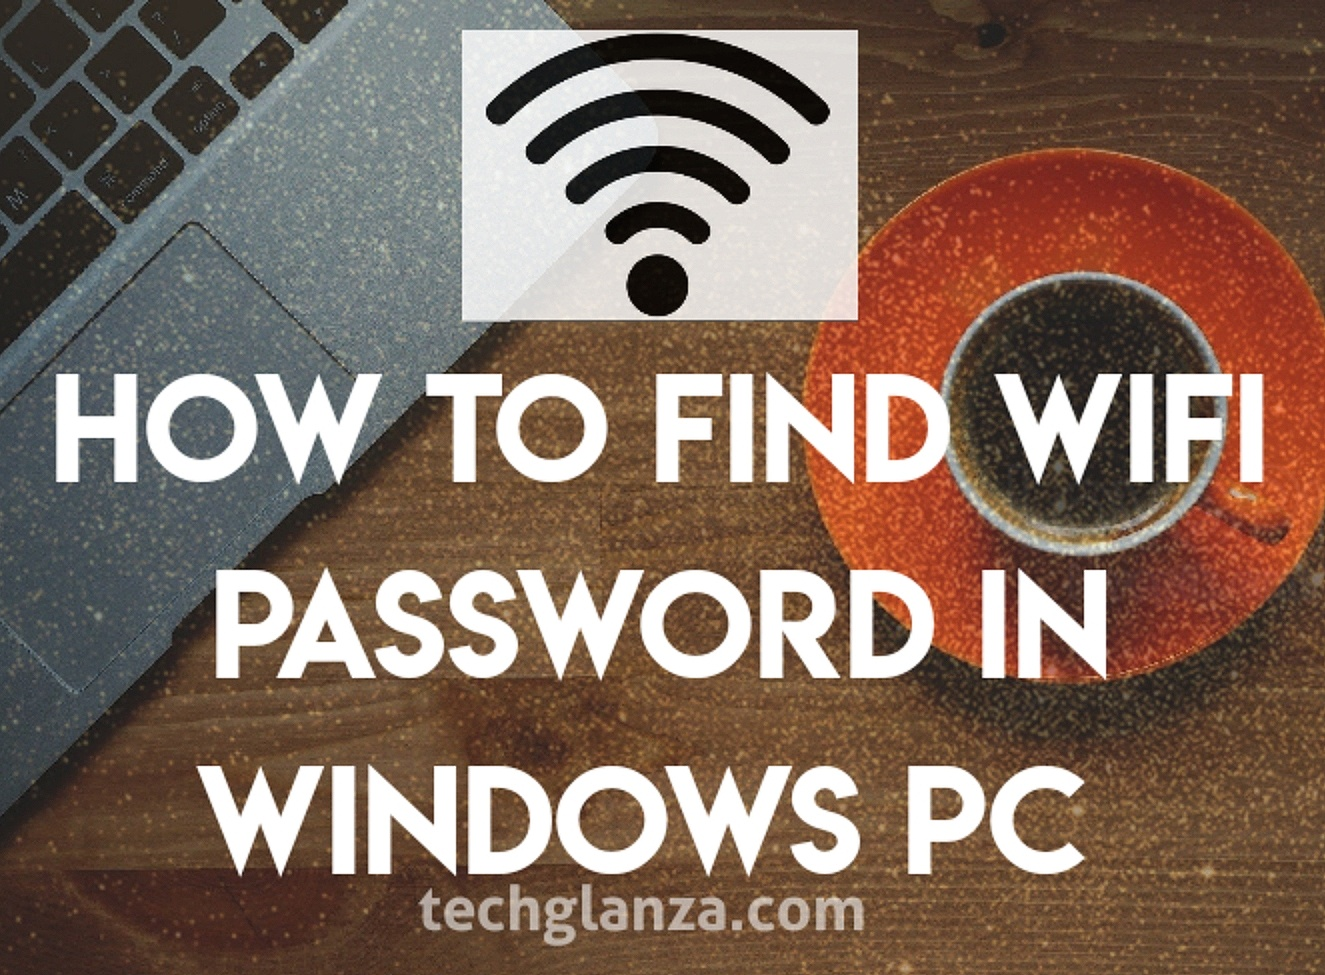 How To Find WiFi Password in Windows PC (Windows 7/8/10)